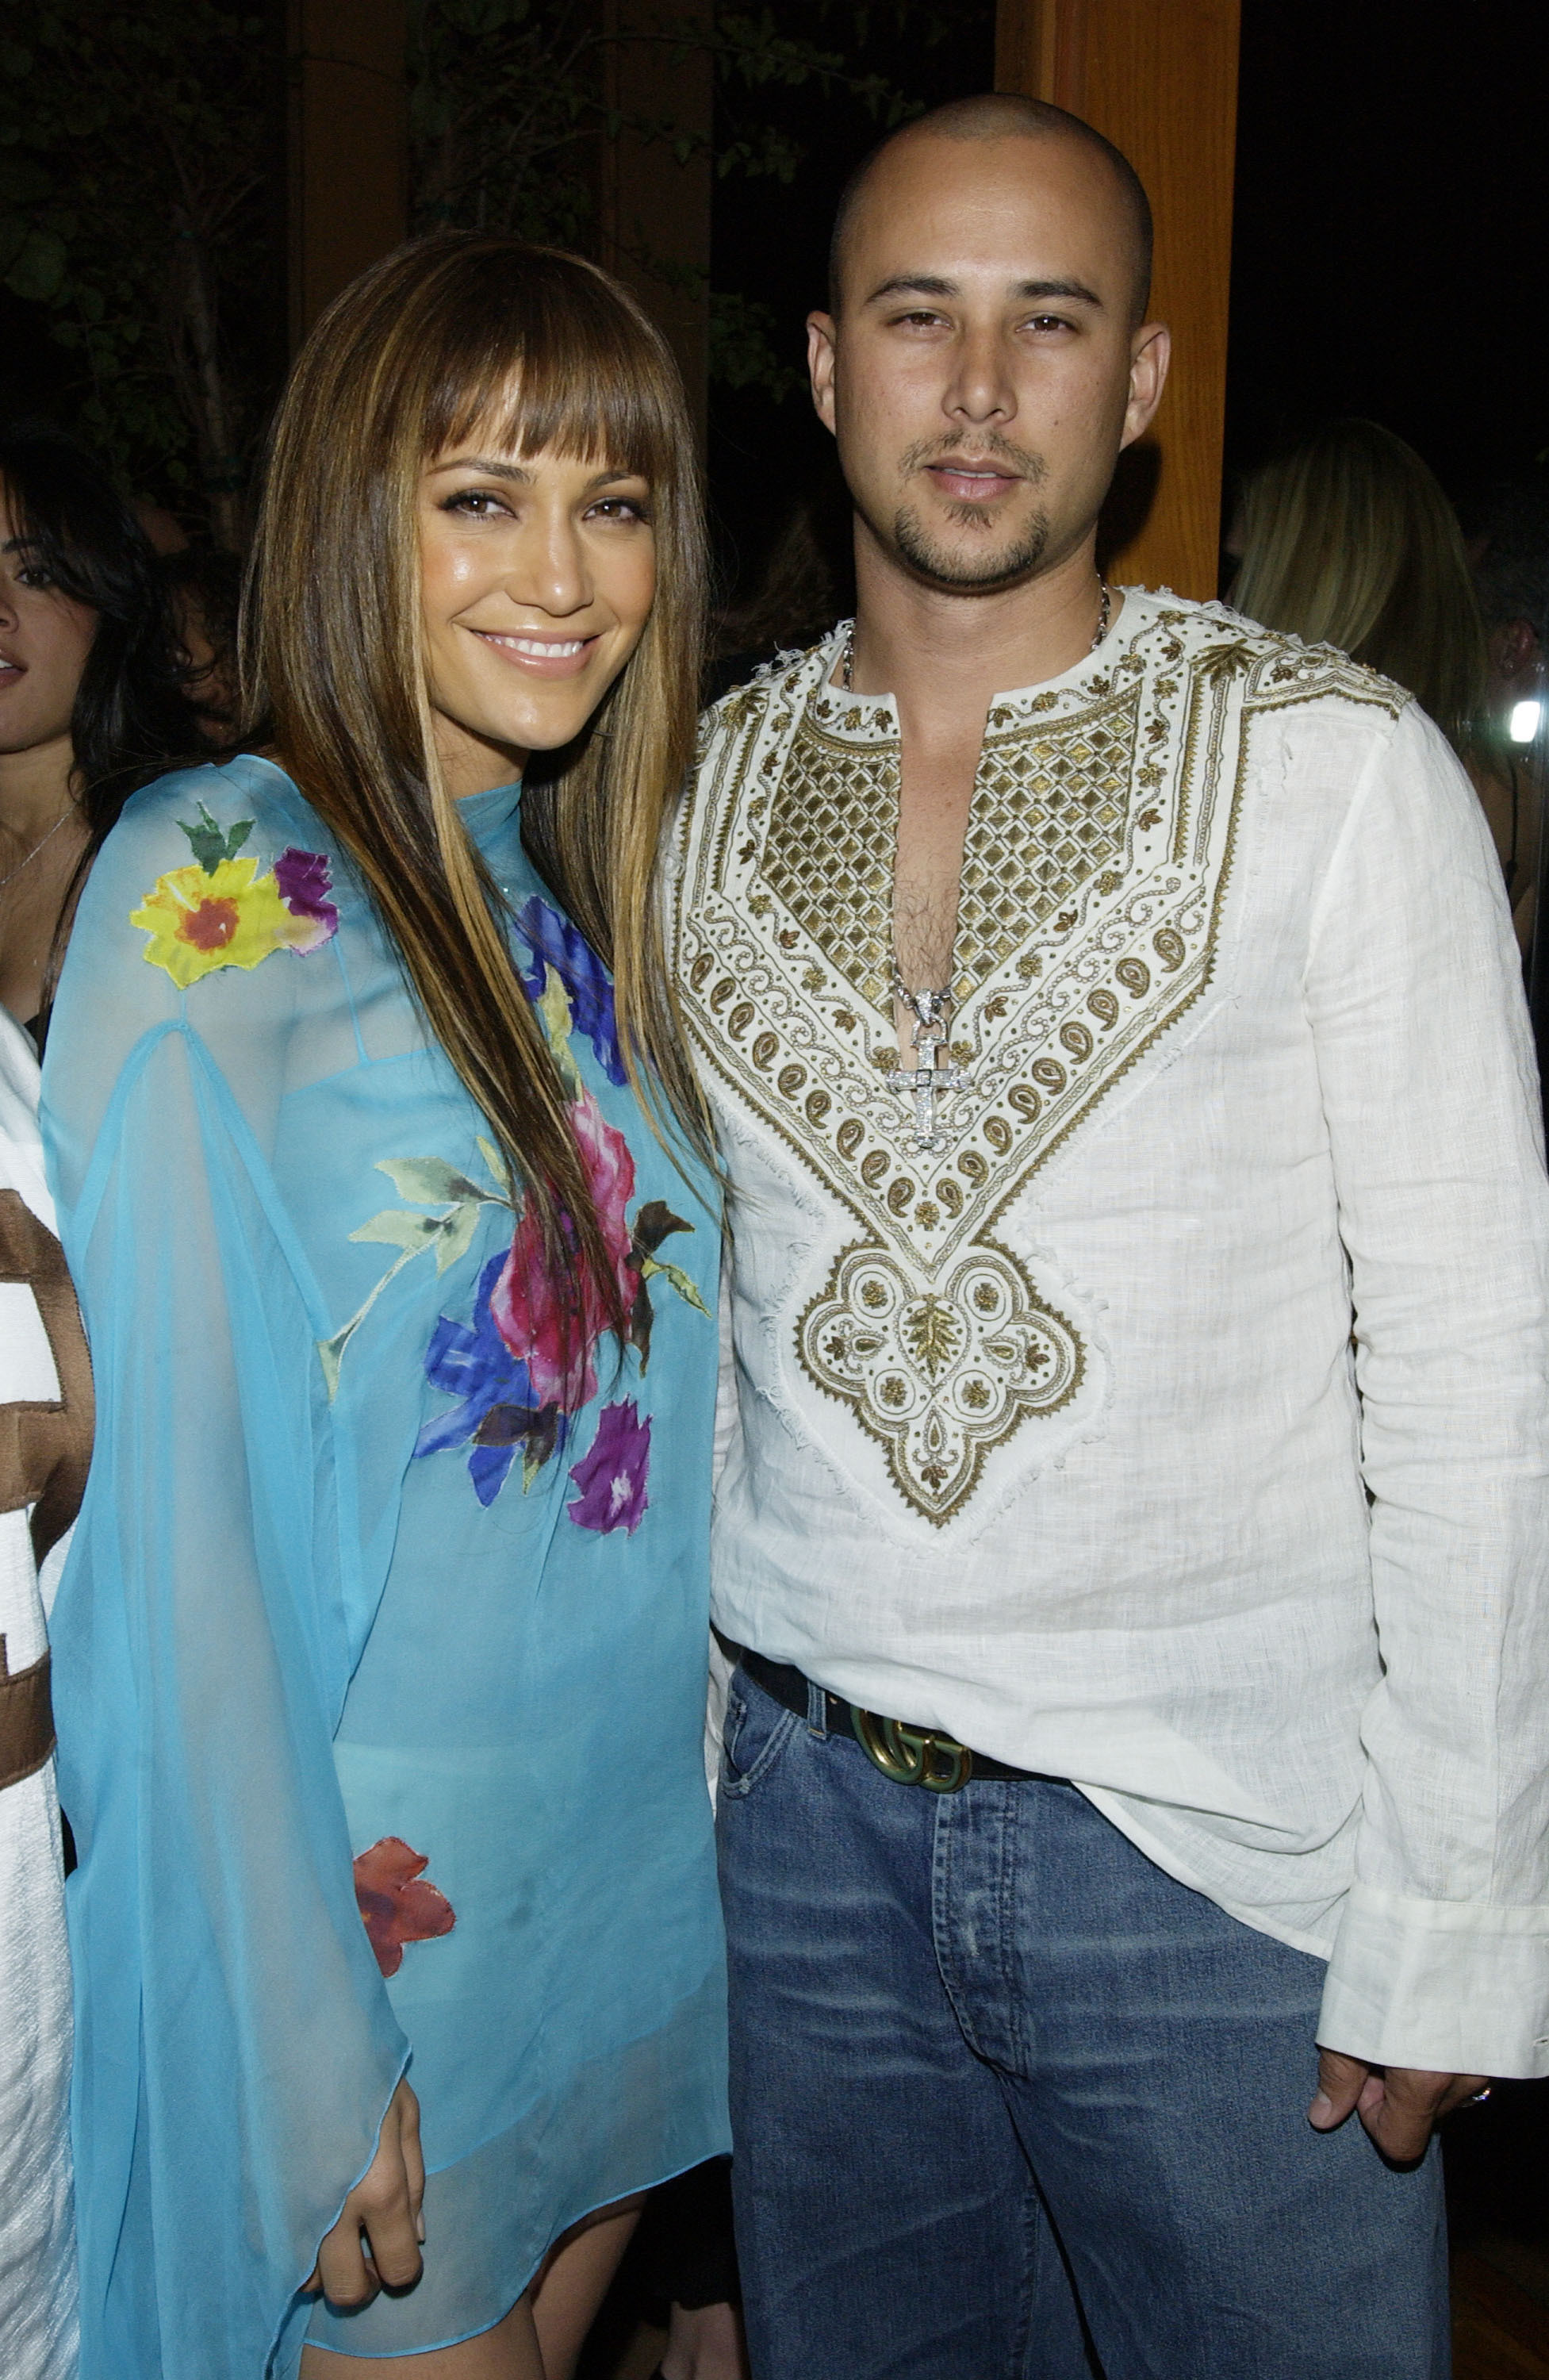 Jennifer Lopez And Cris Judd, 2002 - Famous Grammy Couples You Forgot About - Livingly